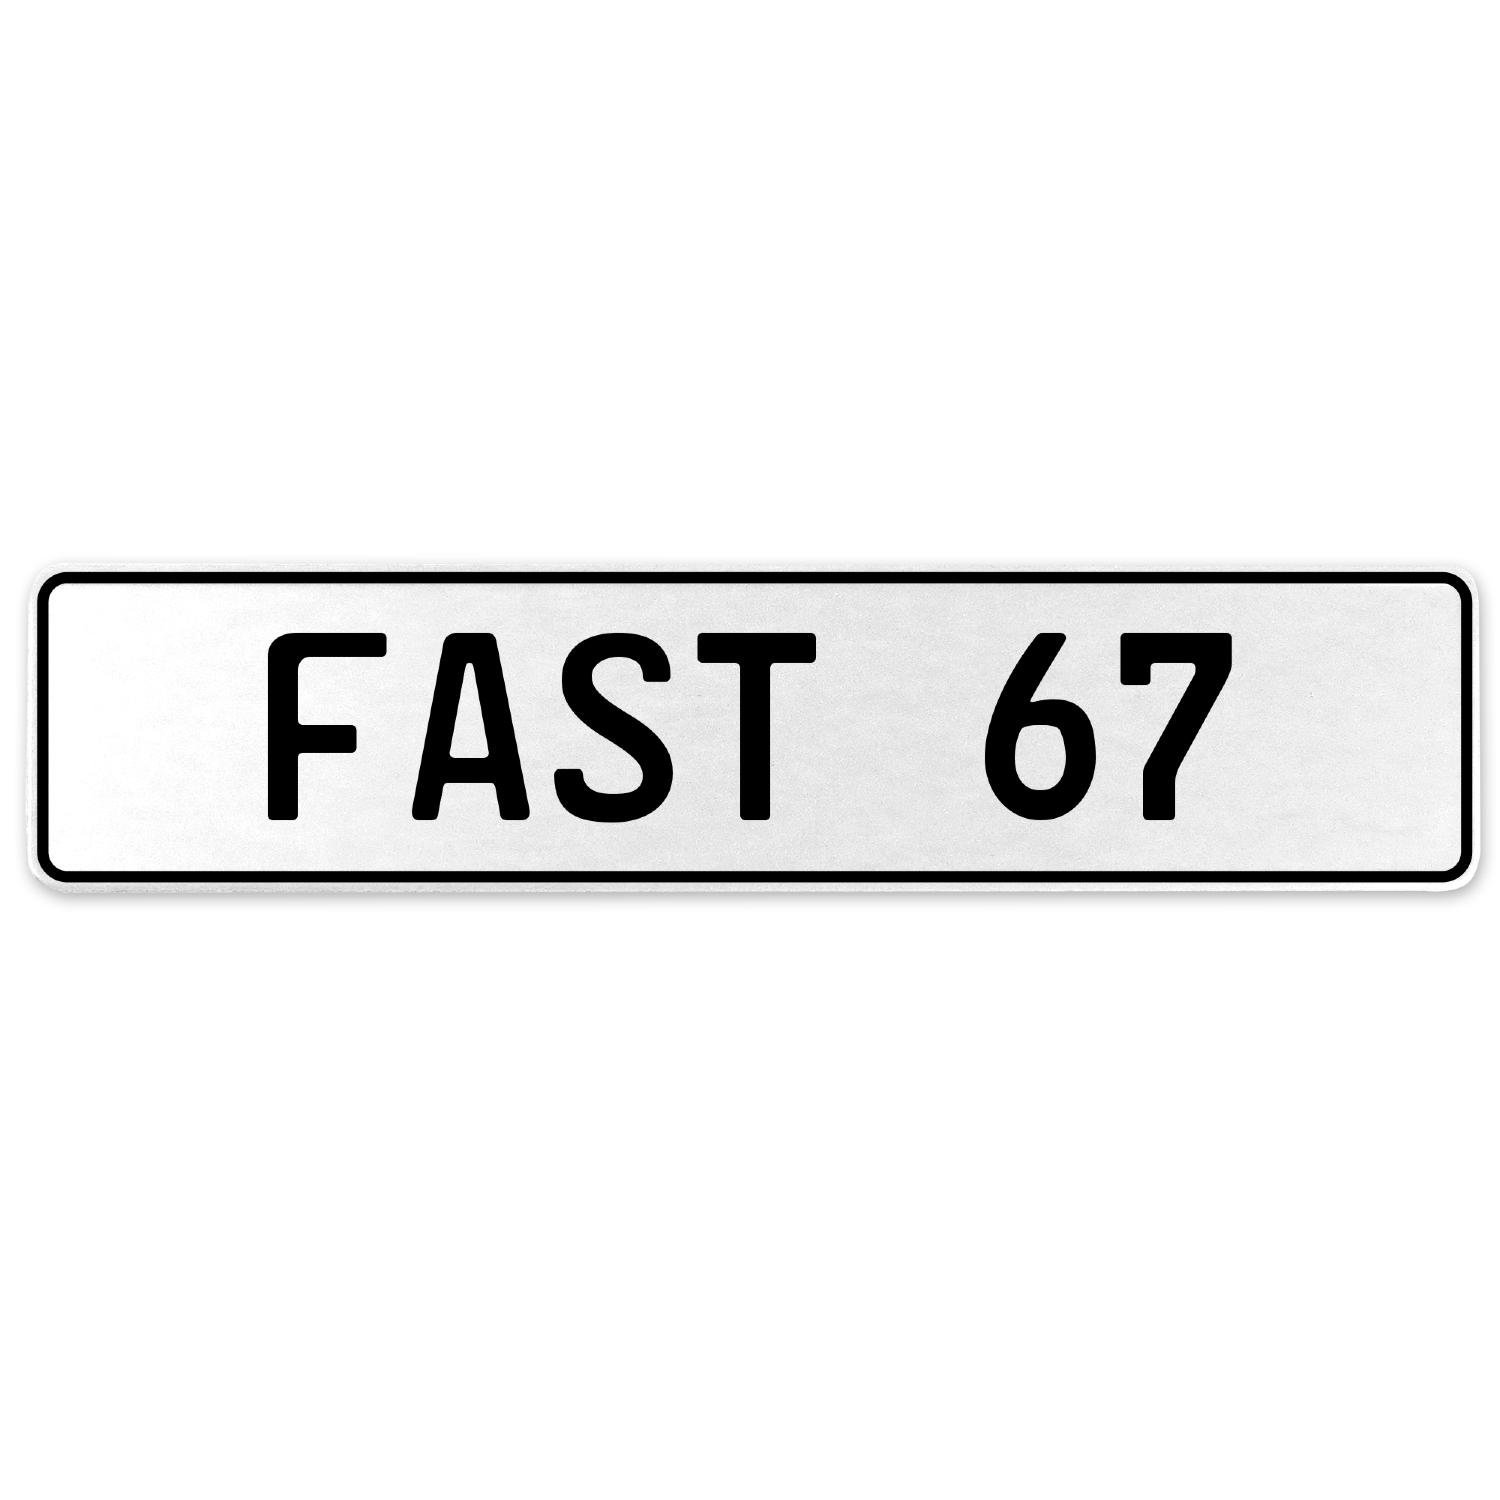 Vintage Parts 557337 Fast 67 White Stamped Aluminum European License Plate